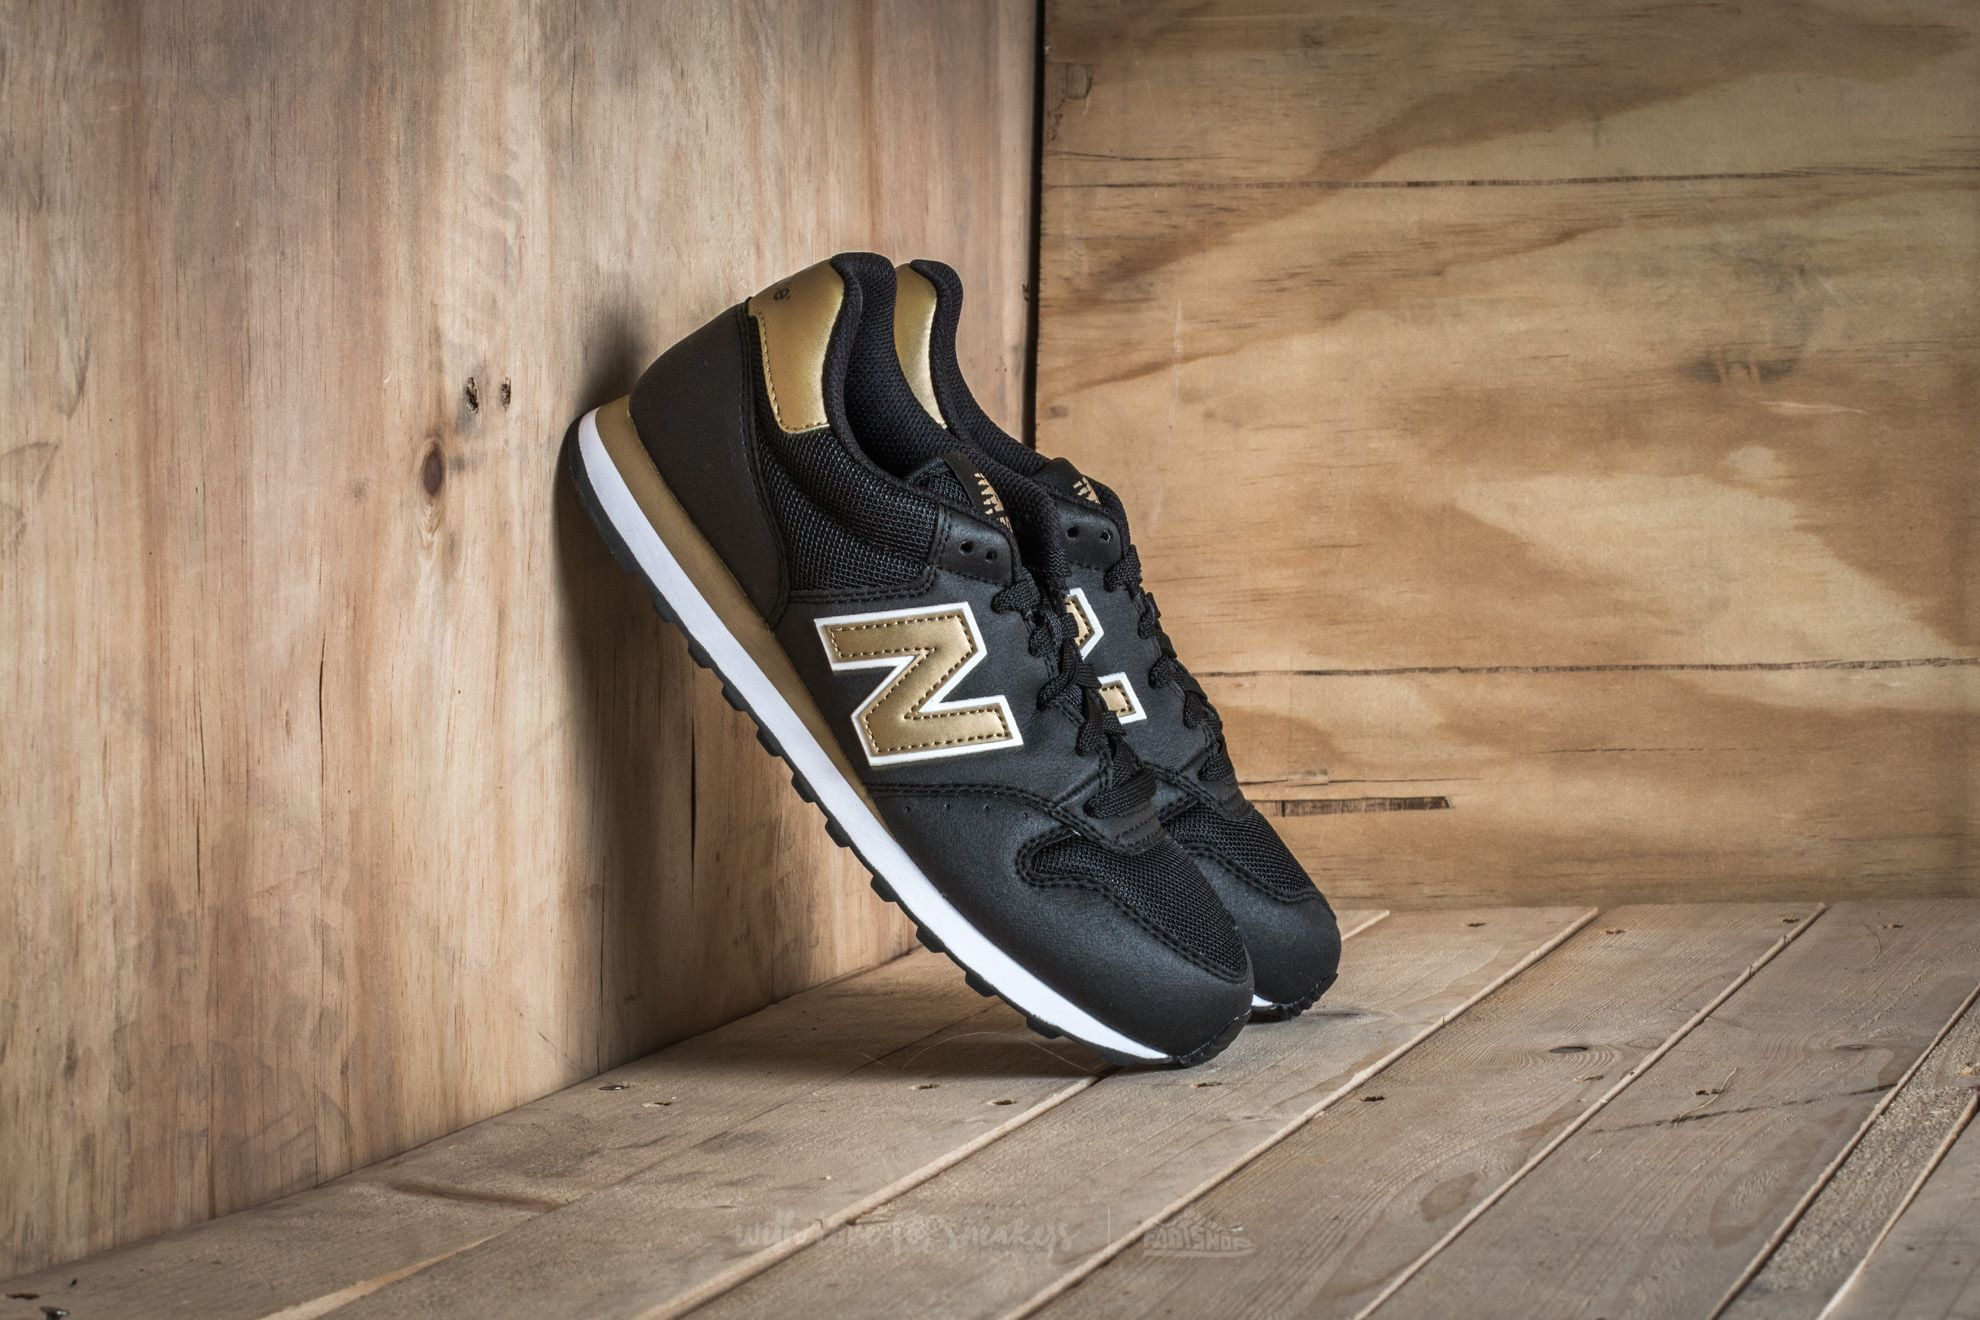 official photos 0c056 1236a New Balance 500. Black  Gold